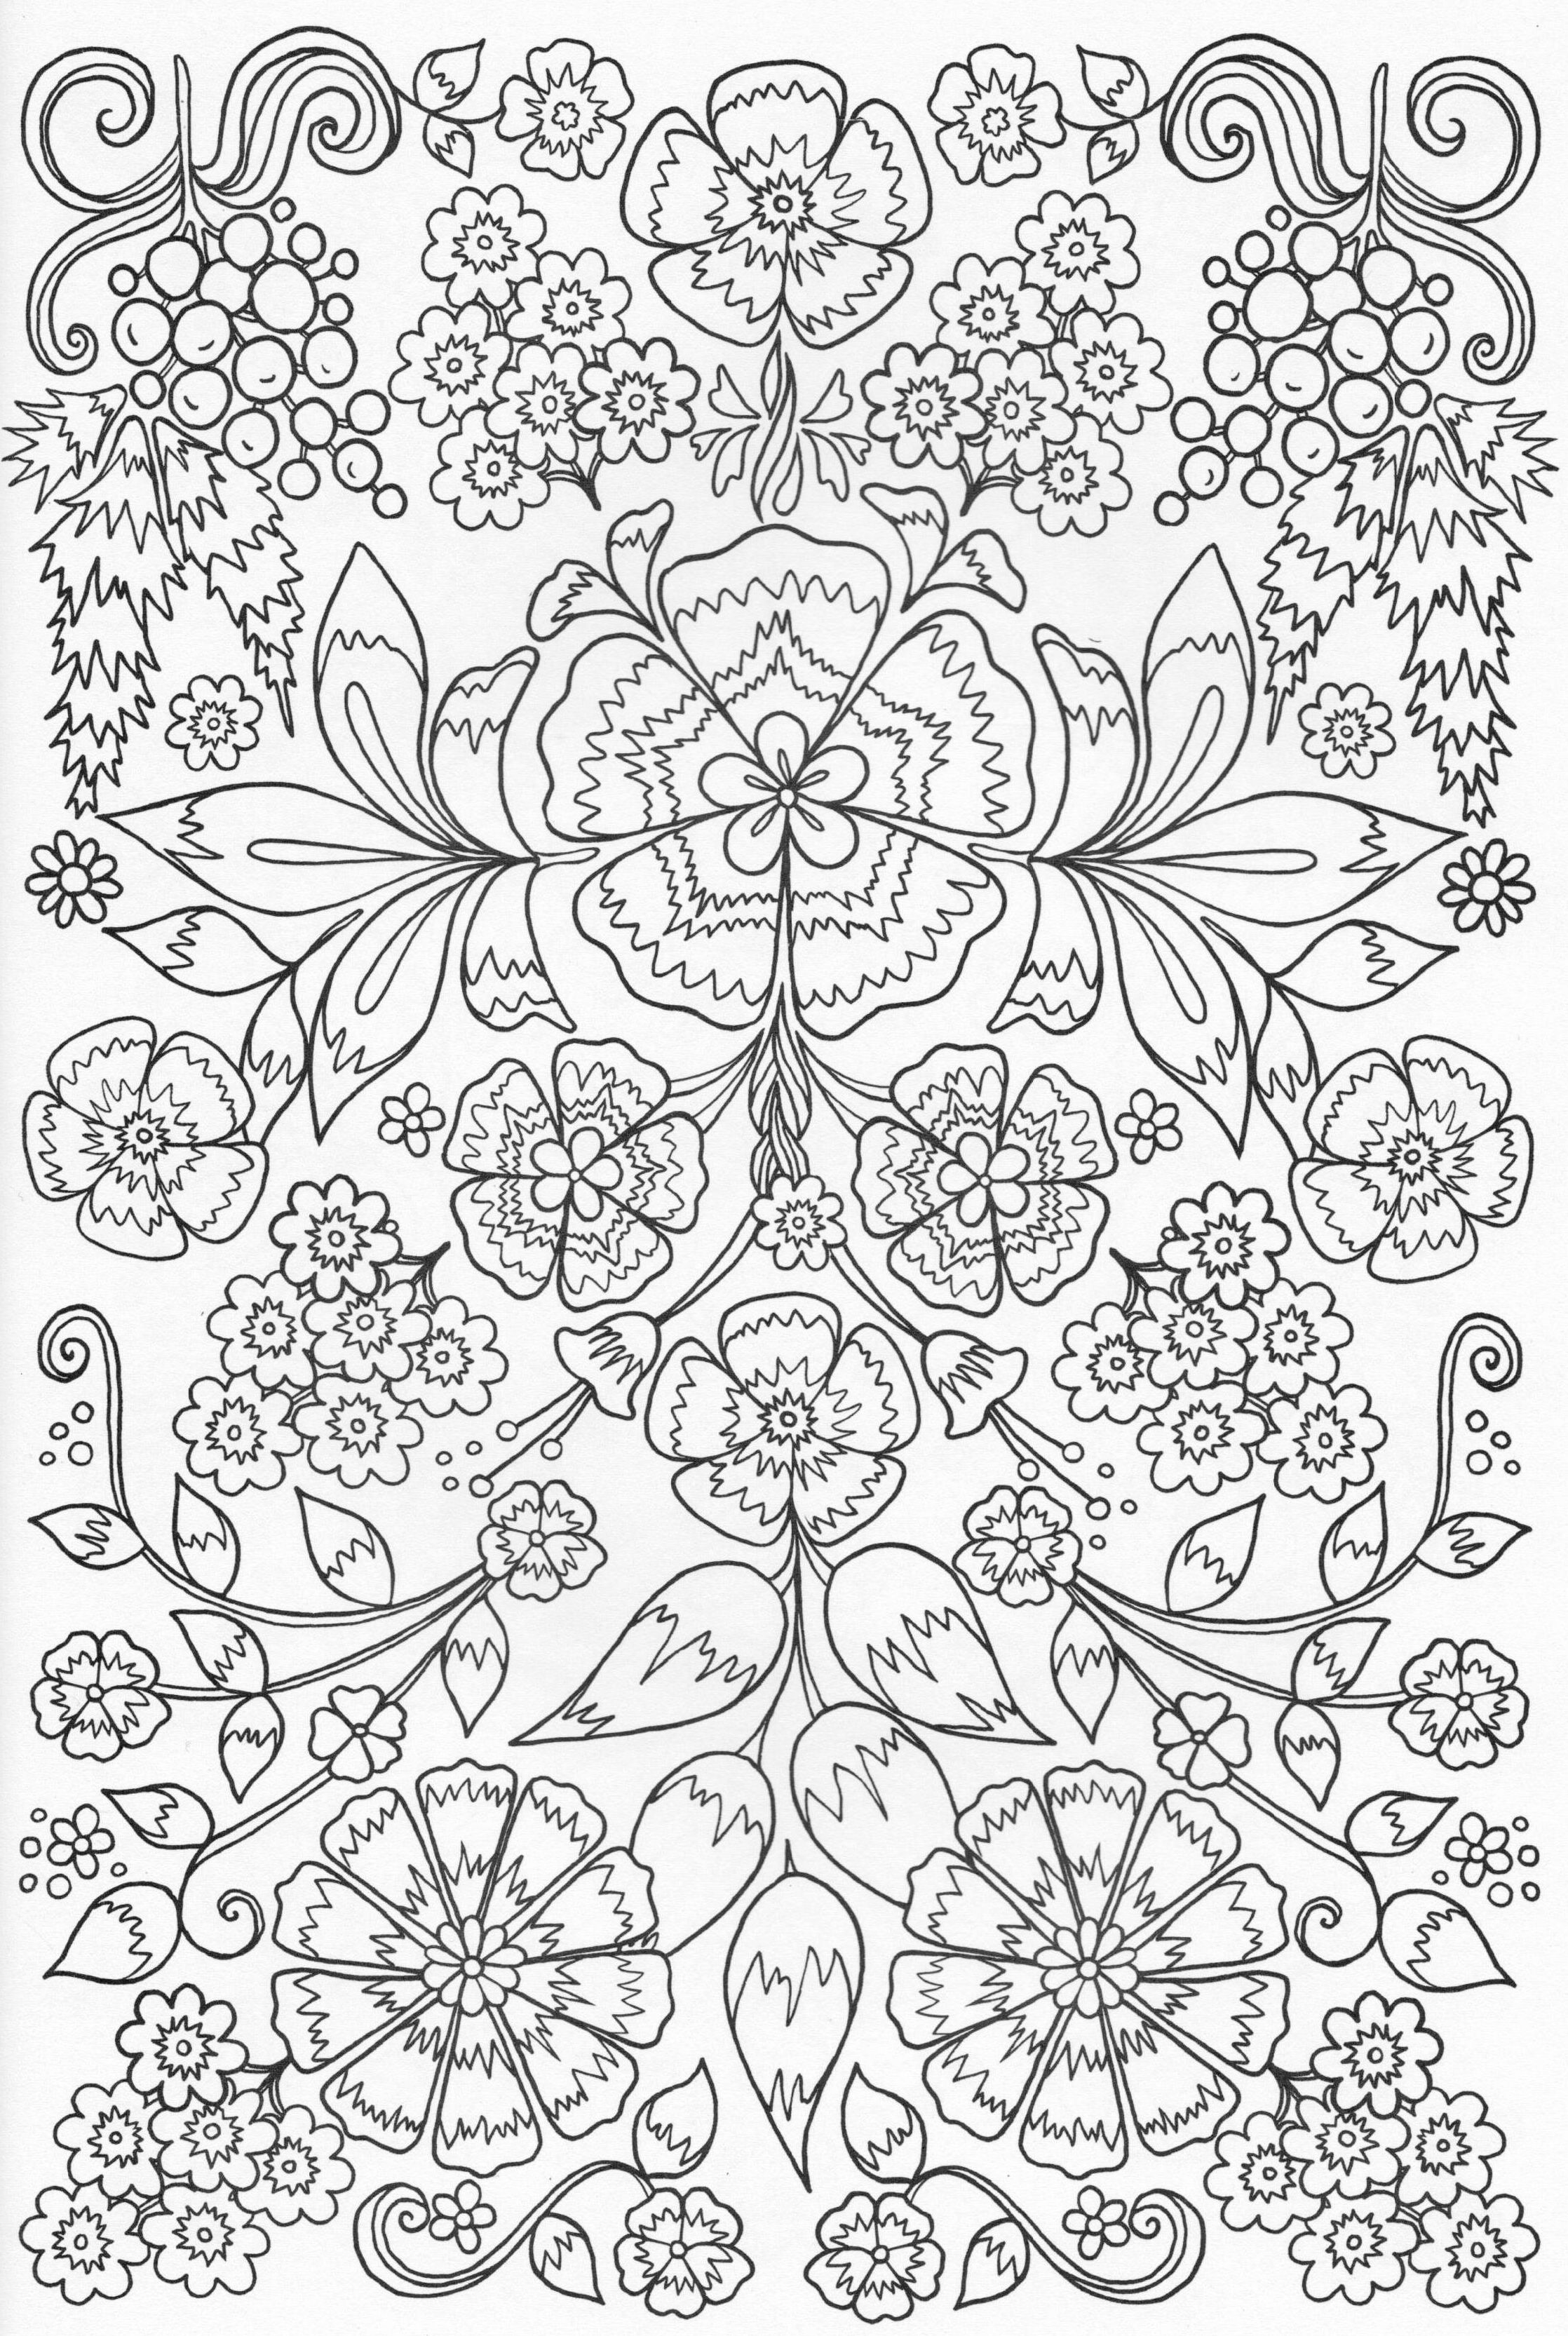 Adult coloring page join my grownup coloring group on fb